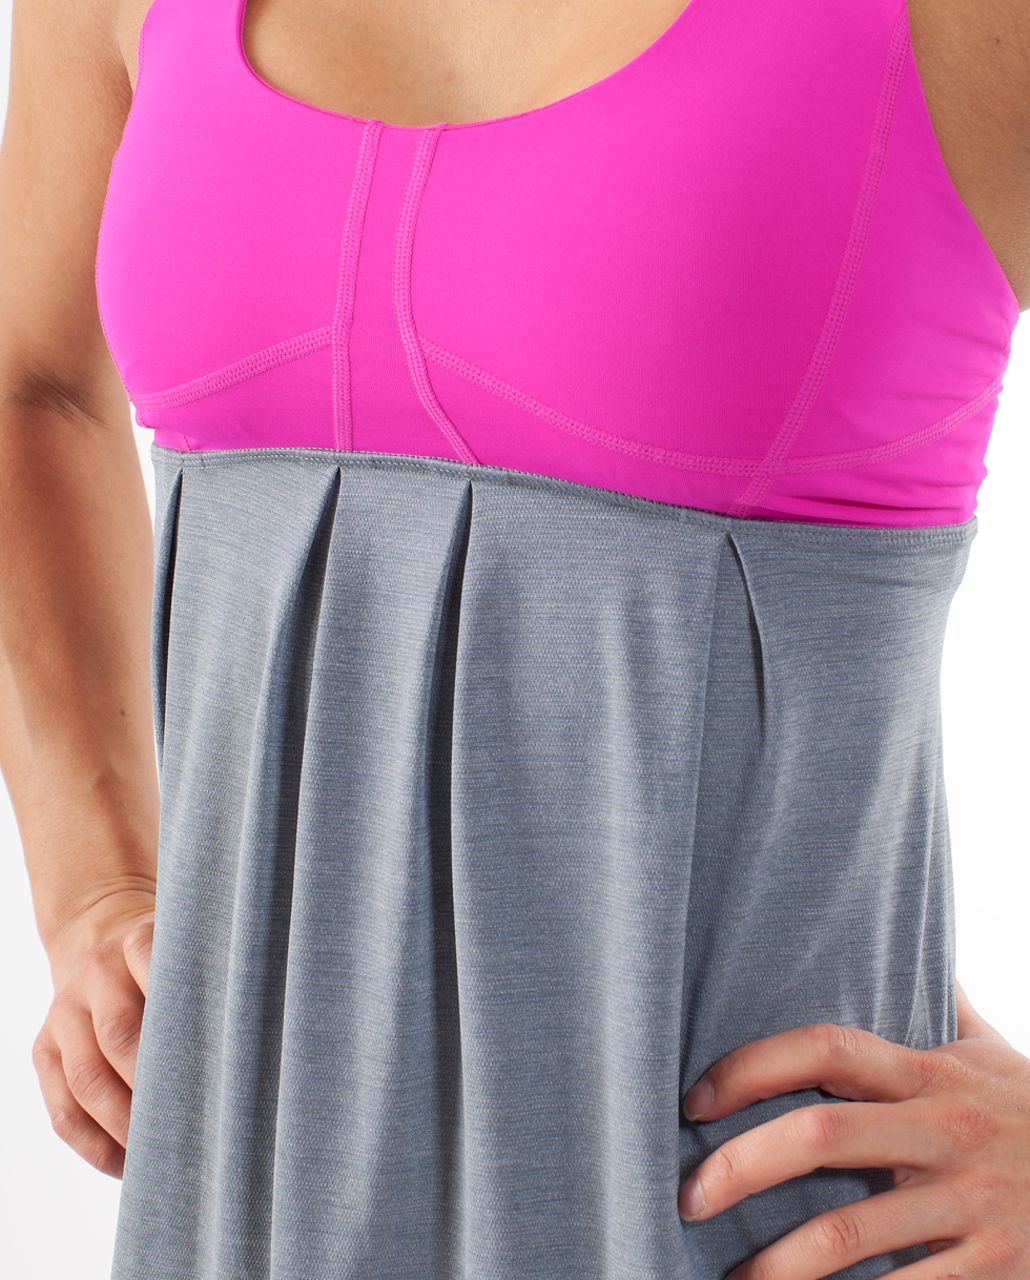 Lululemon Run:  Your Heart Out Tank - Paris Pink /  Heathered Blurred Grey